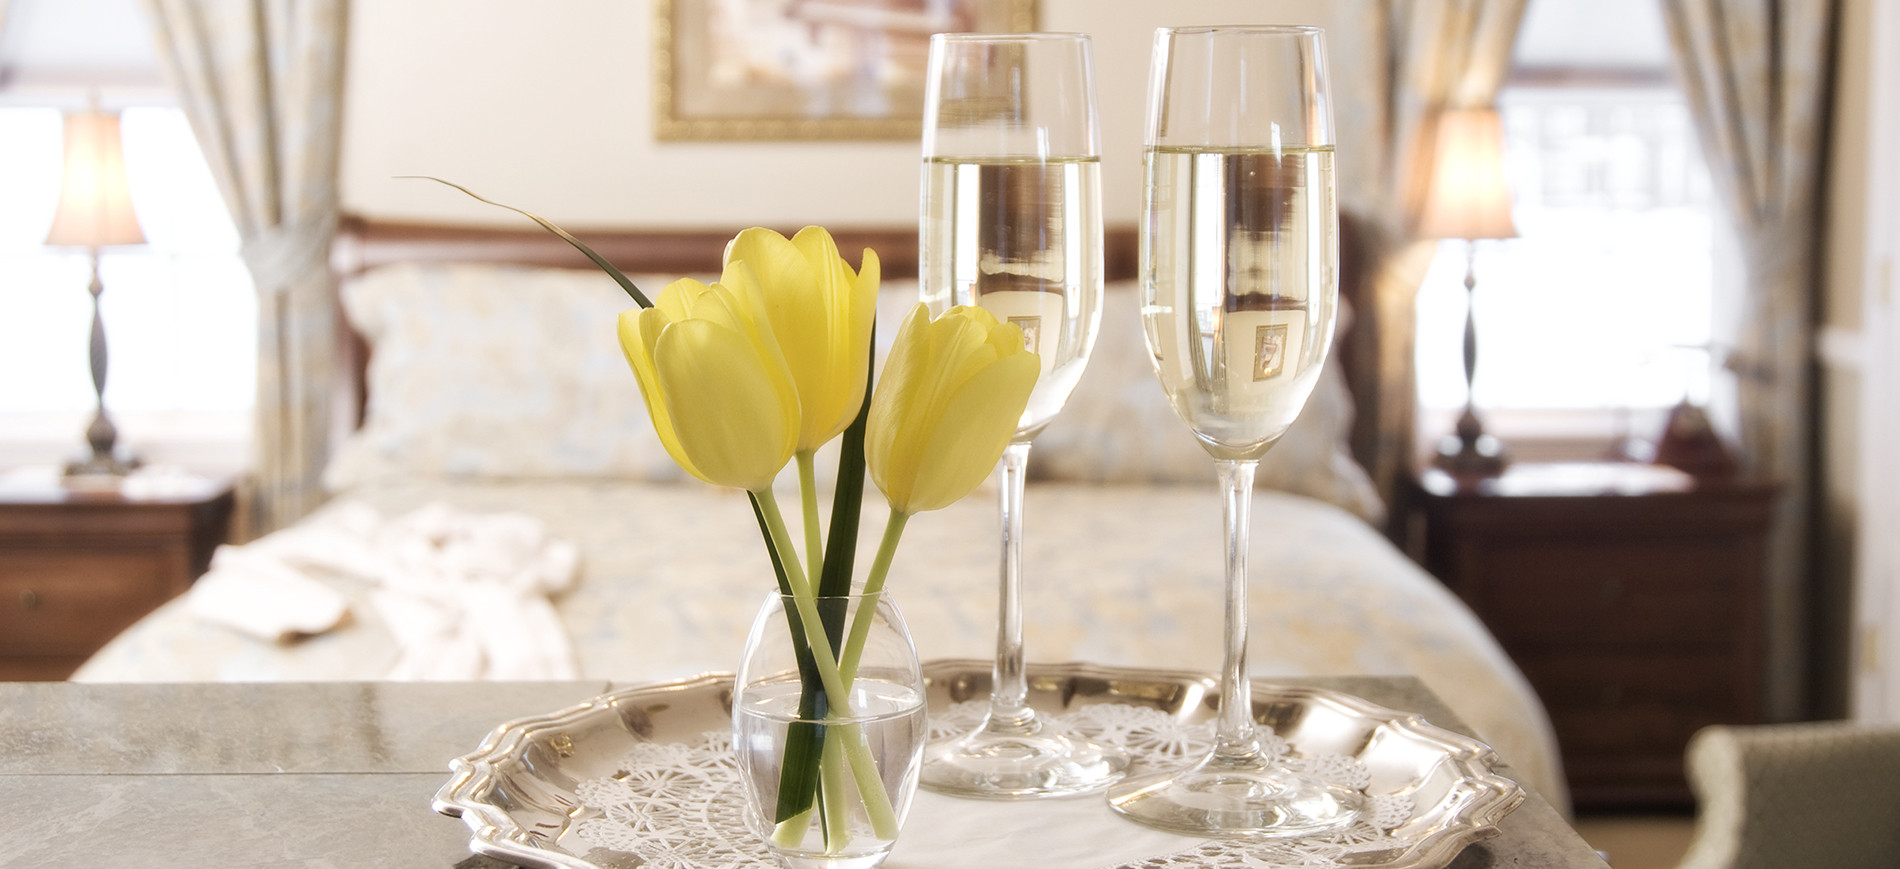 Silver tray with three yellow tulips in vase, two glasses of champagne with bed behind